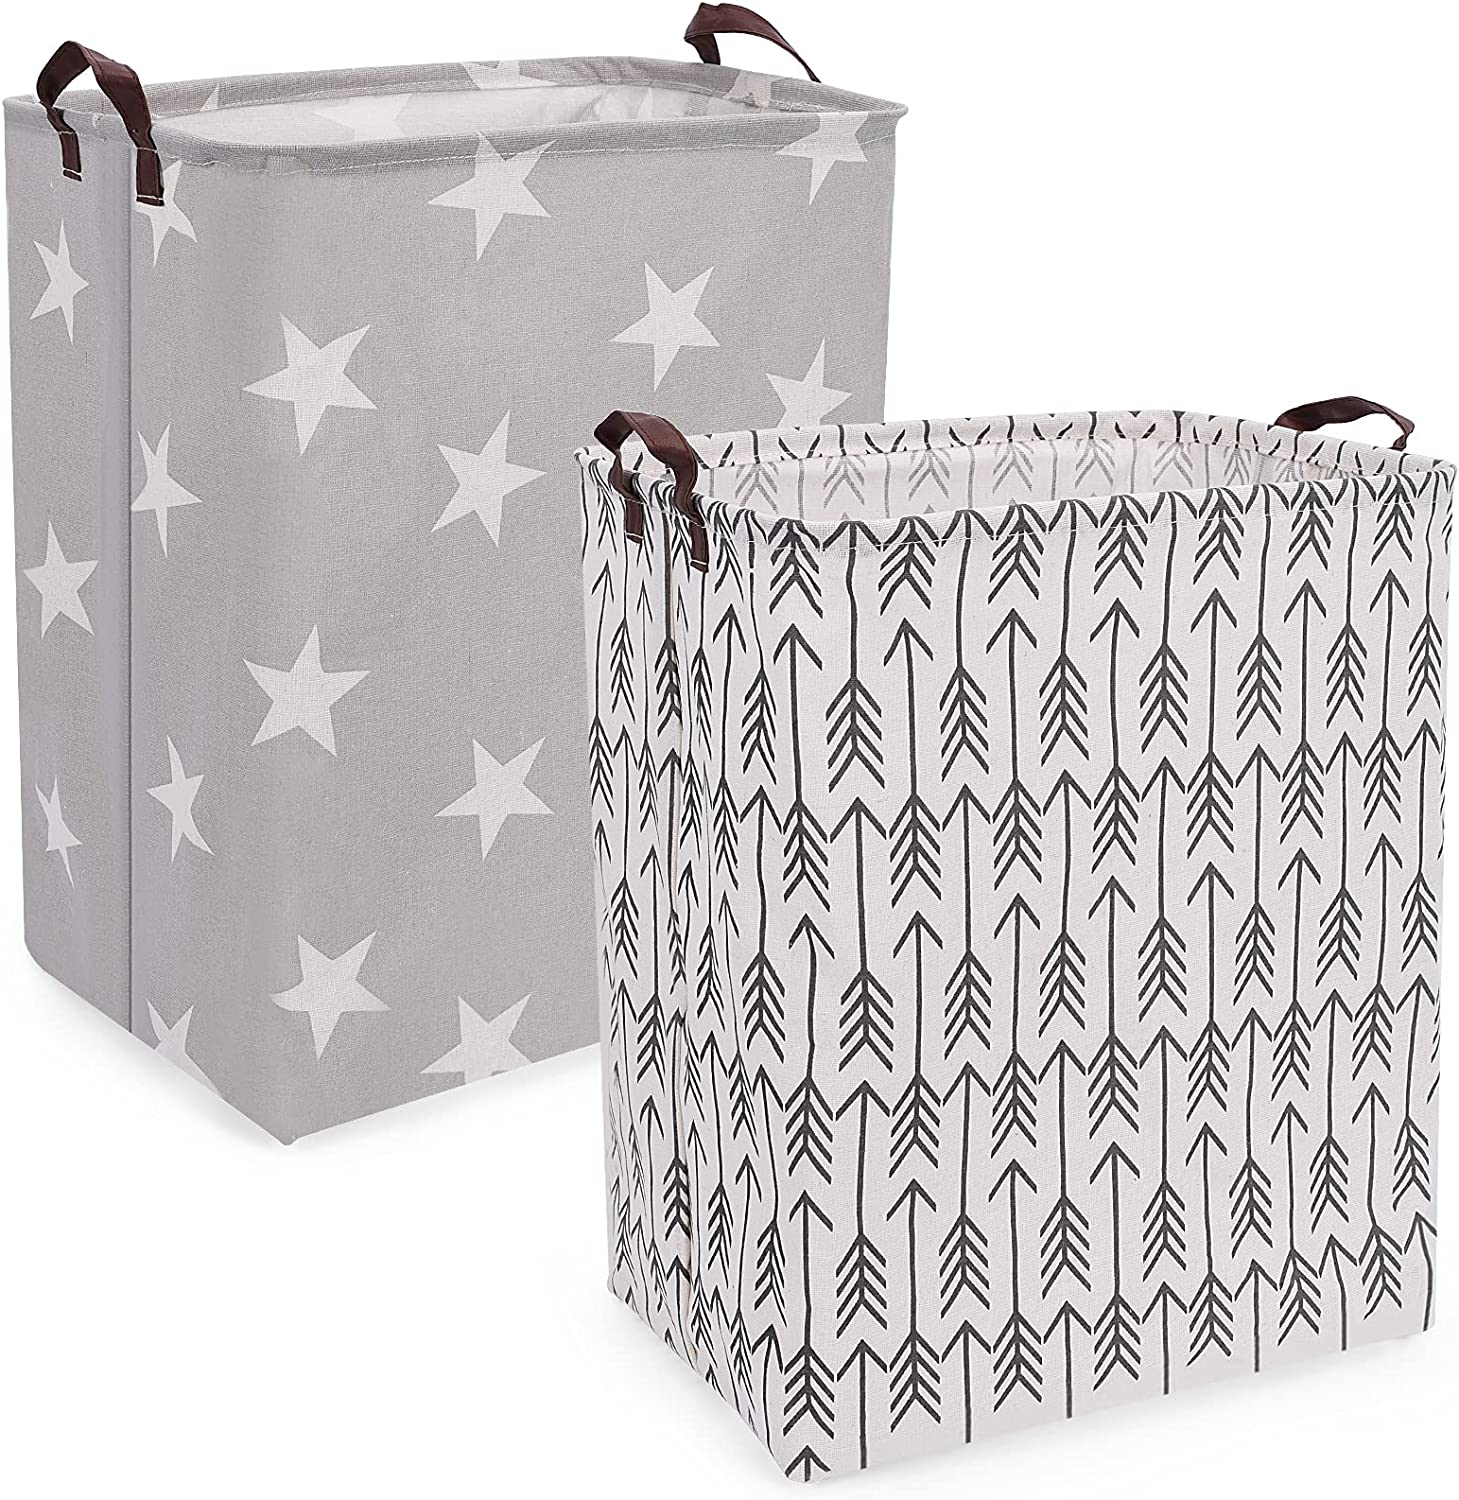 Seebel 2PK Square Laundry Louisville-Jefferson County Mall Basket Collapsible Fabric Milwaukee Mall Organ Canvas